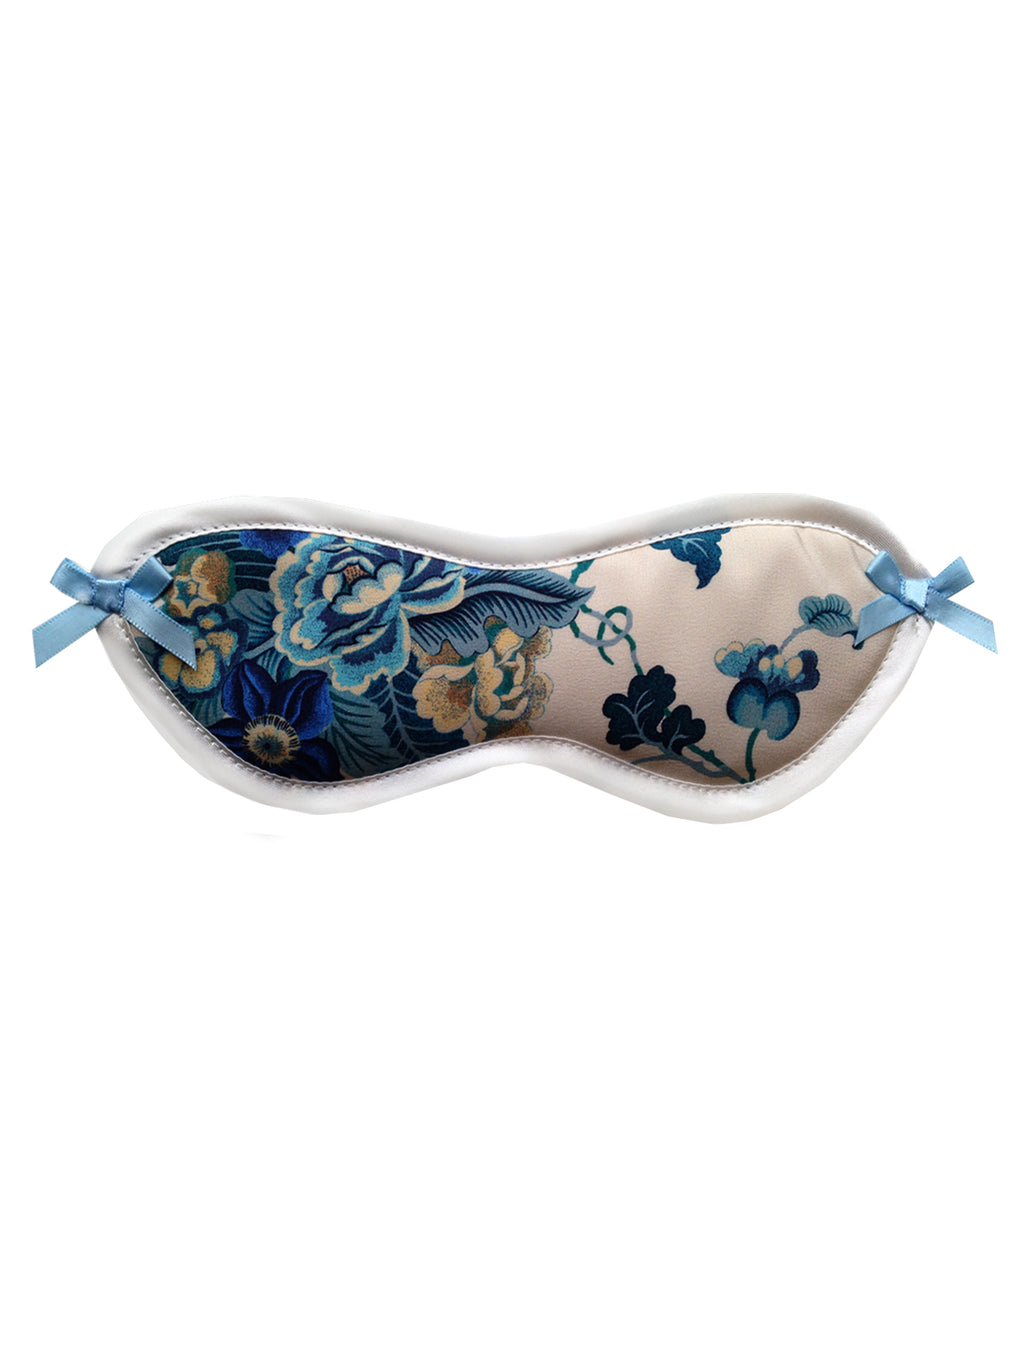 Jennifer Liberty Floral Silk Eyemask by Ayten Gasson